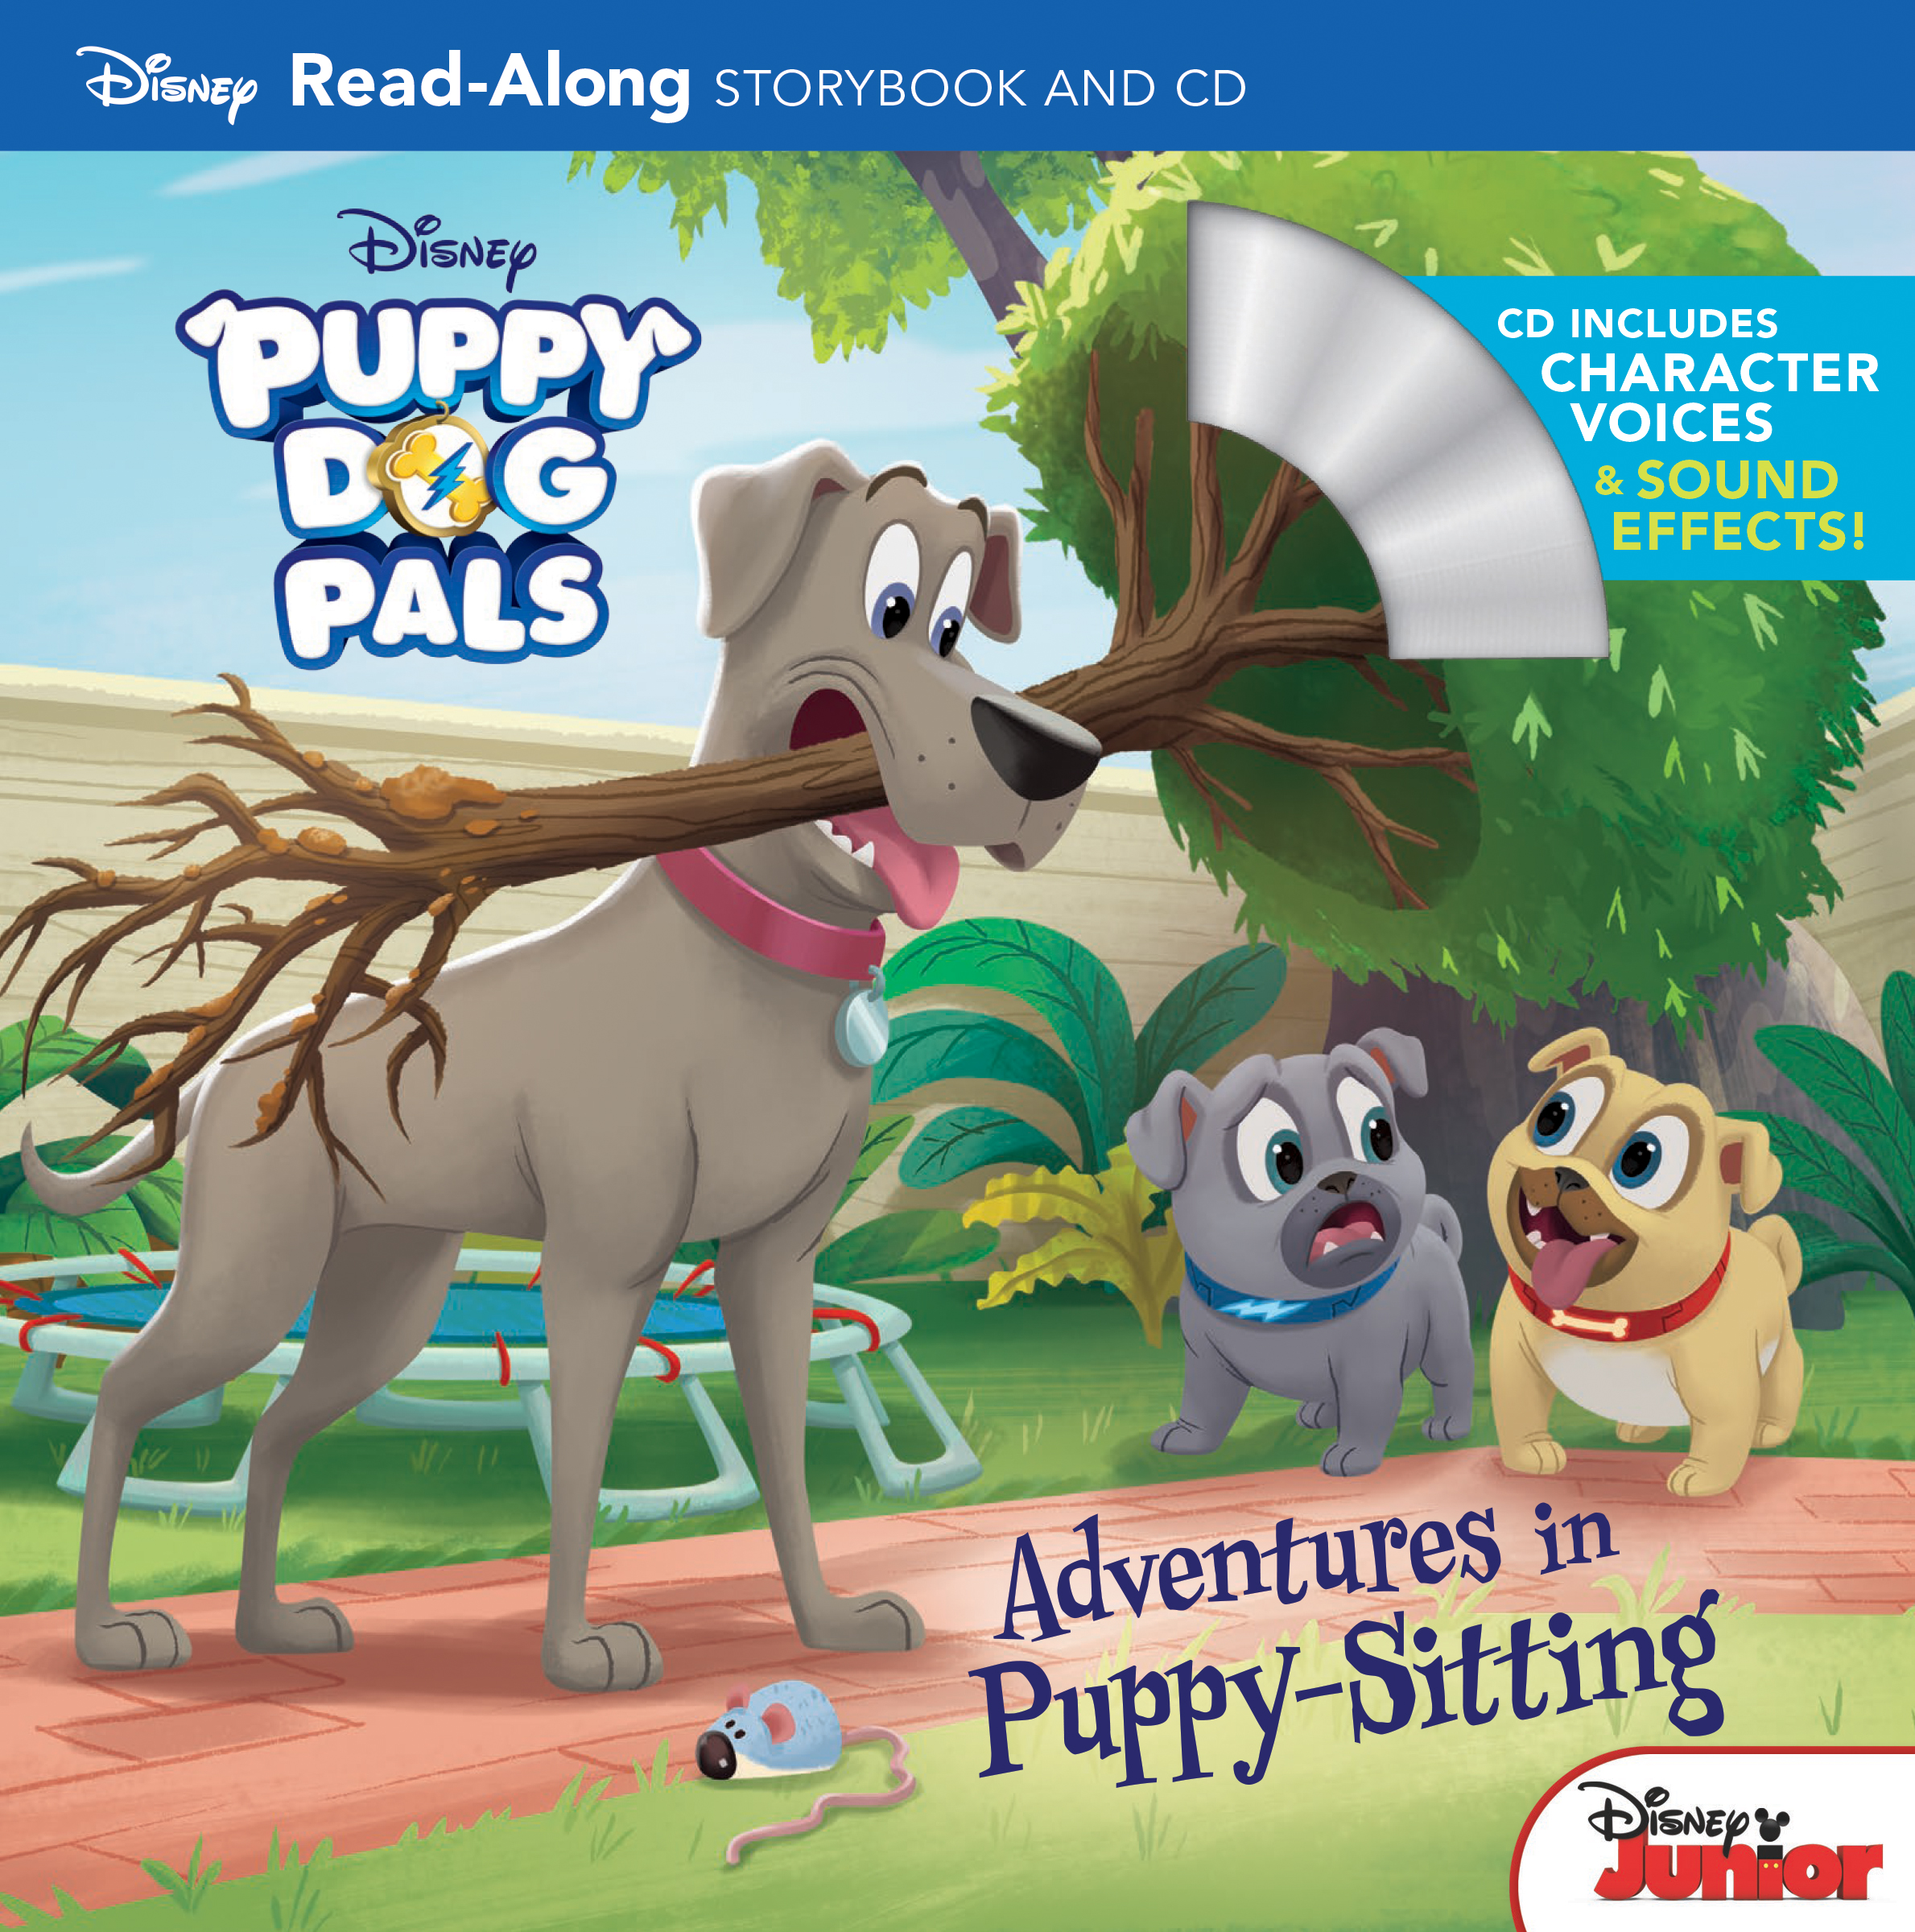 Puppy Dog Pals: Adventures in Puppy-Sitting